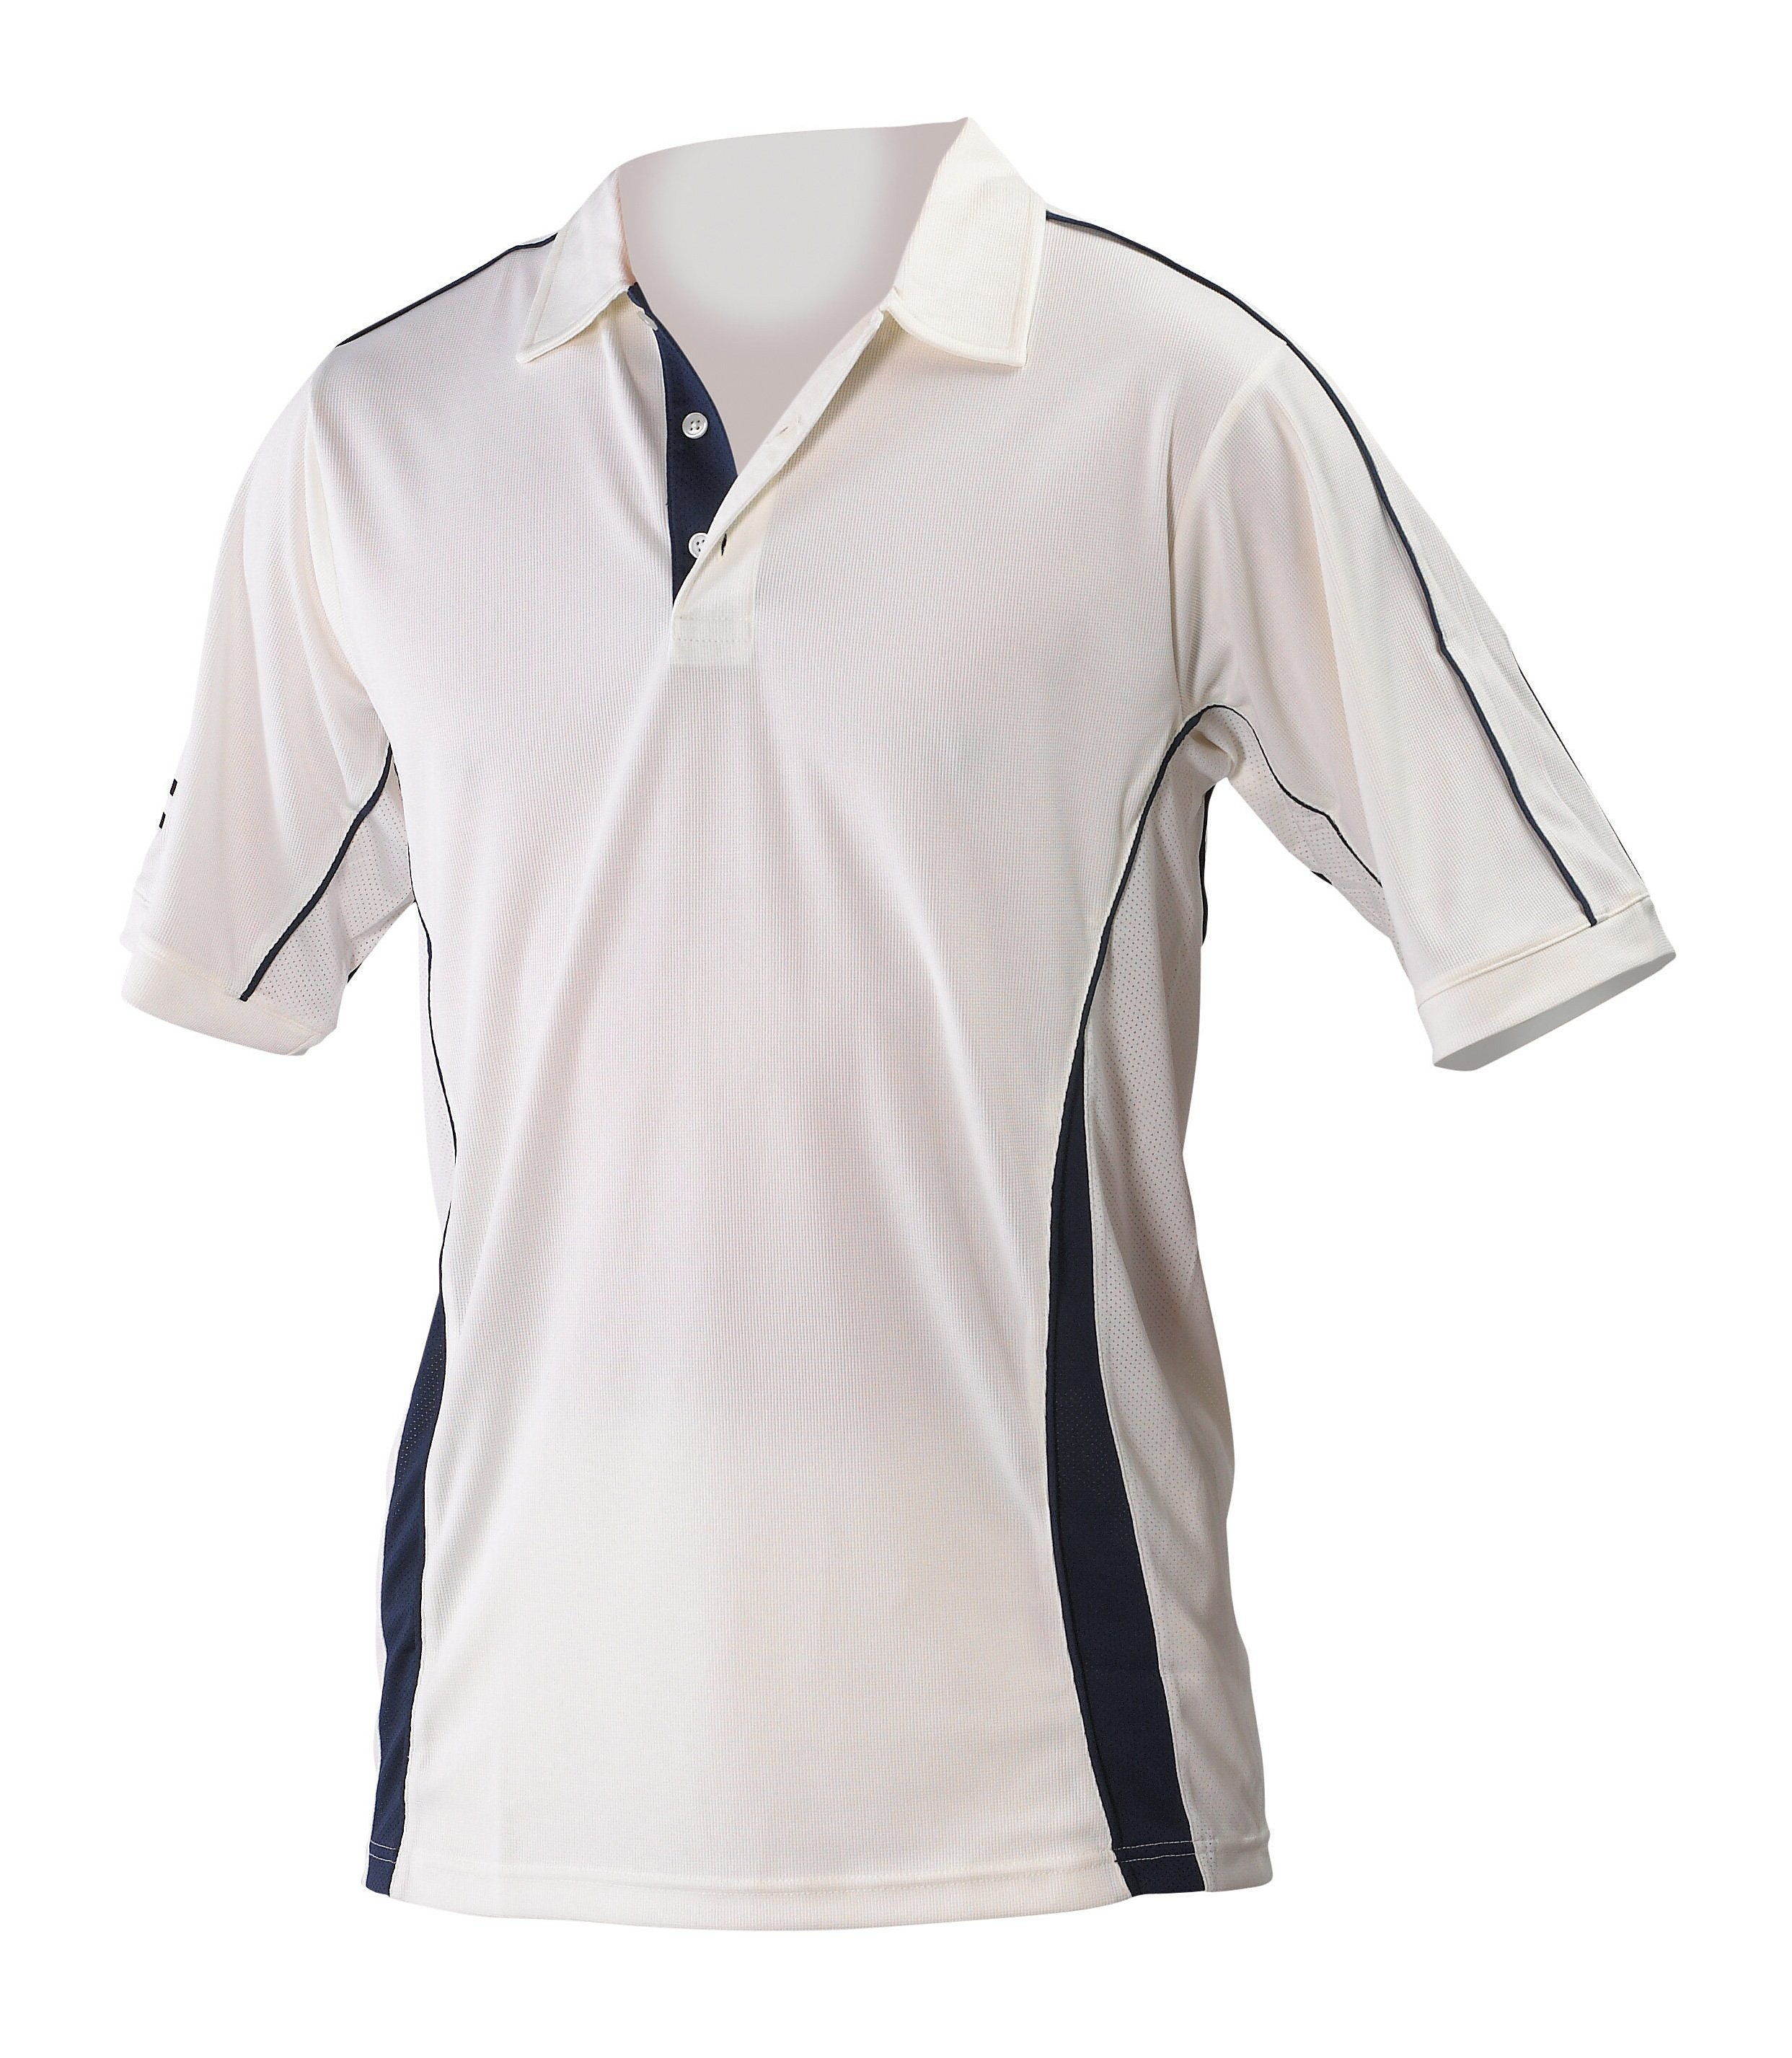 Gray Nicolls GRAY-NICOLLS Junior Players Short Sleeve Shirt